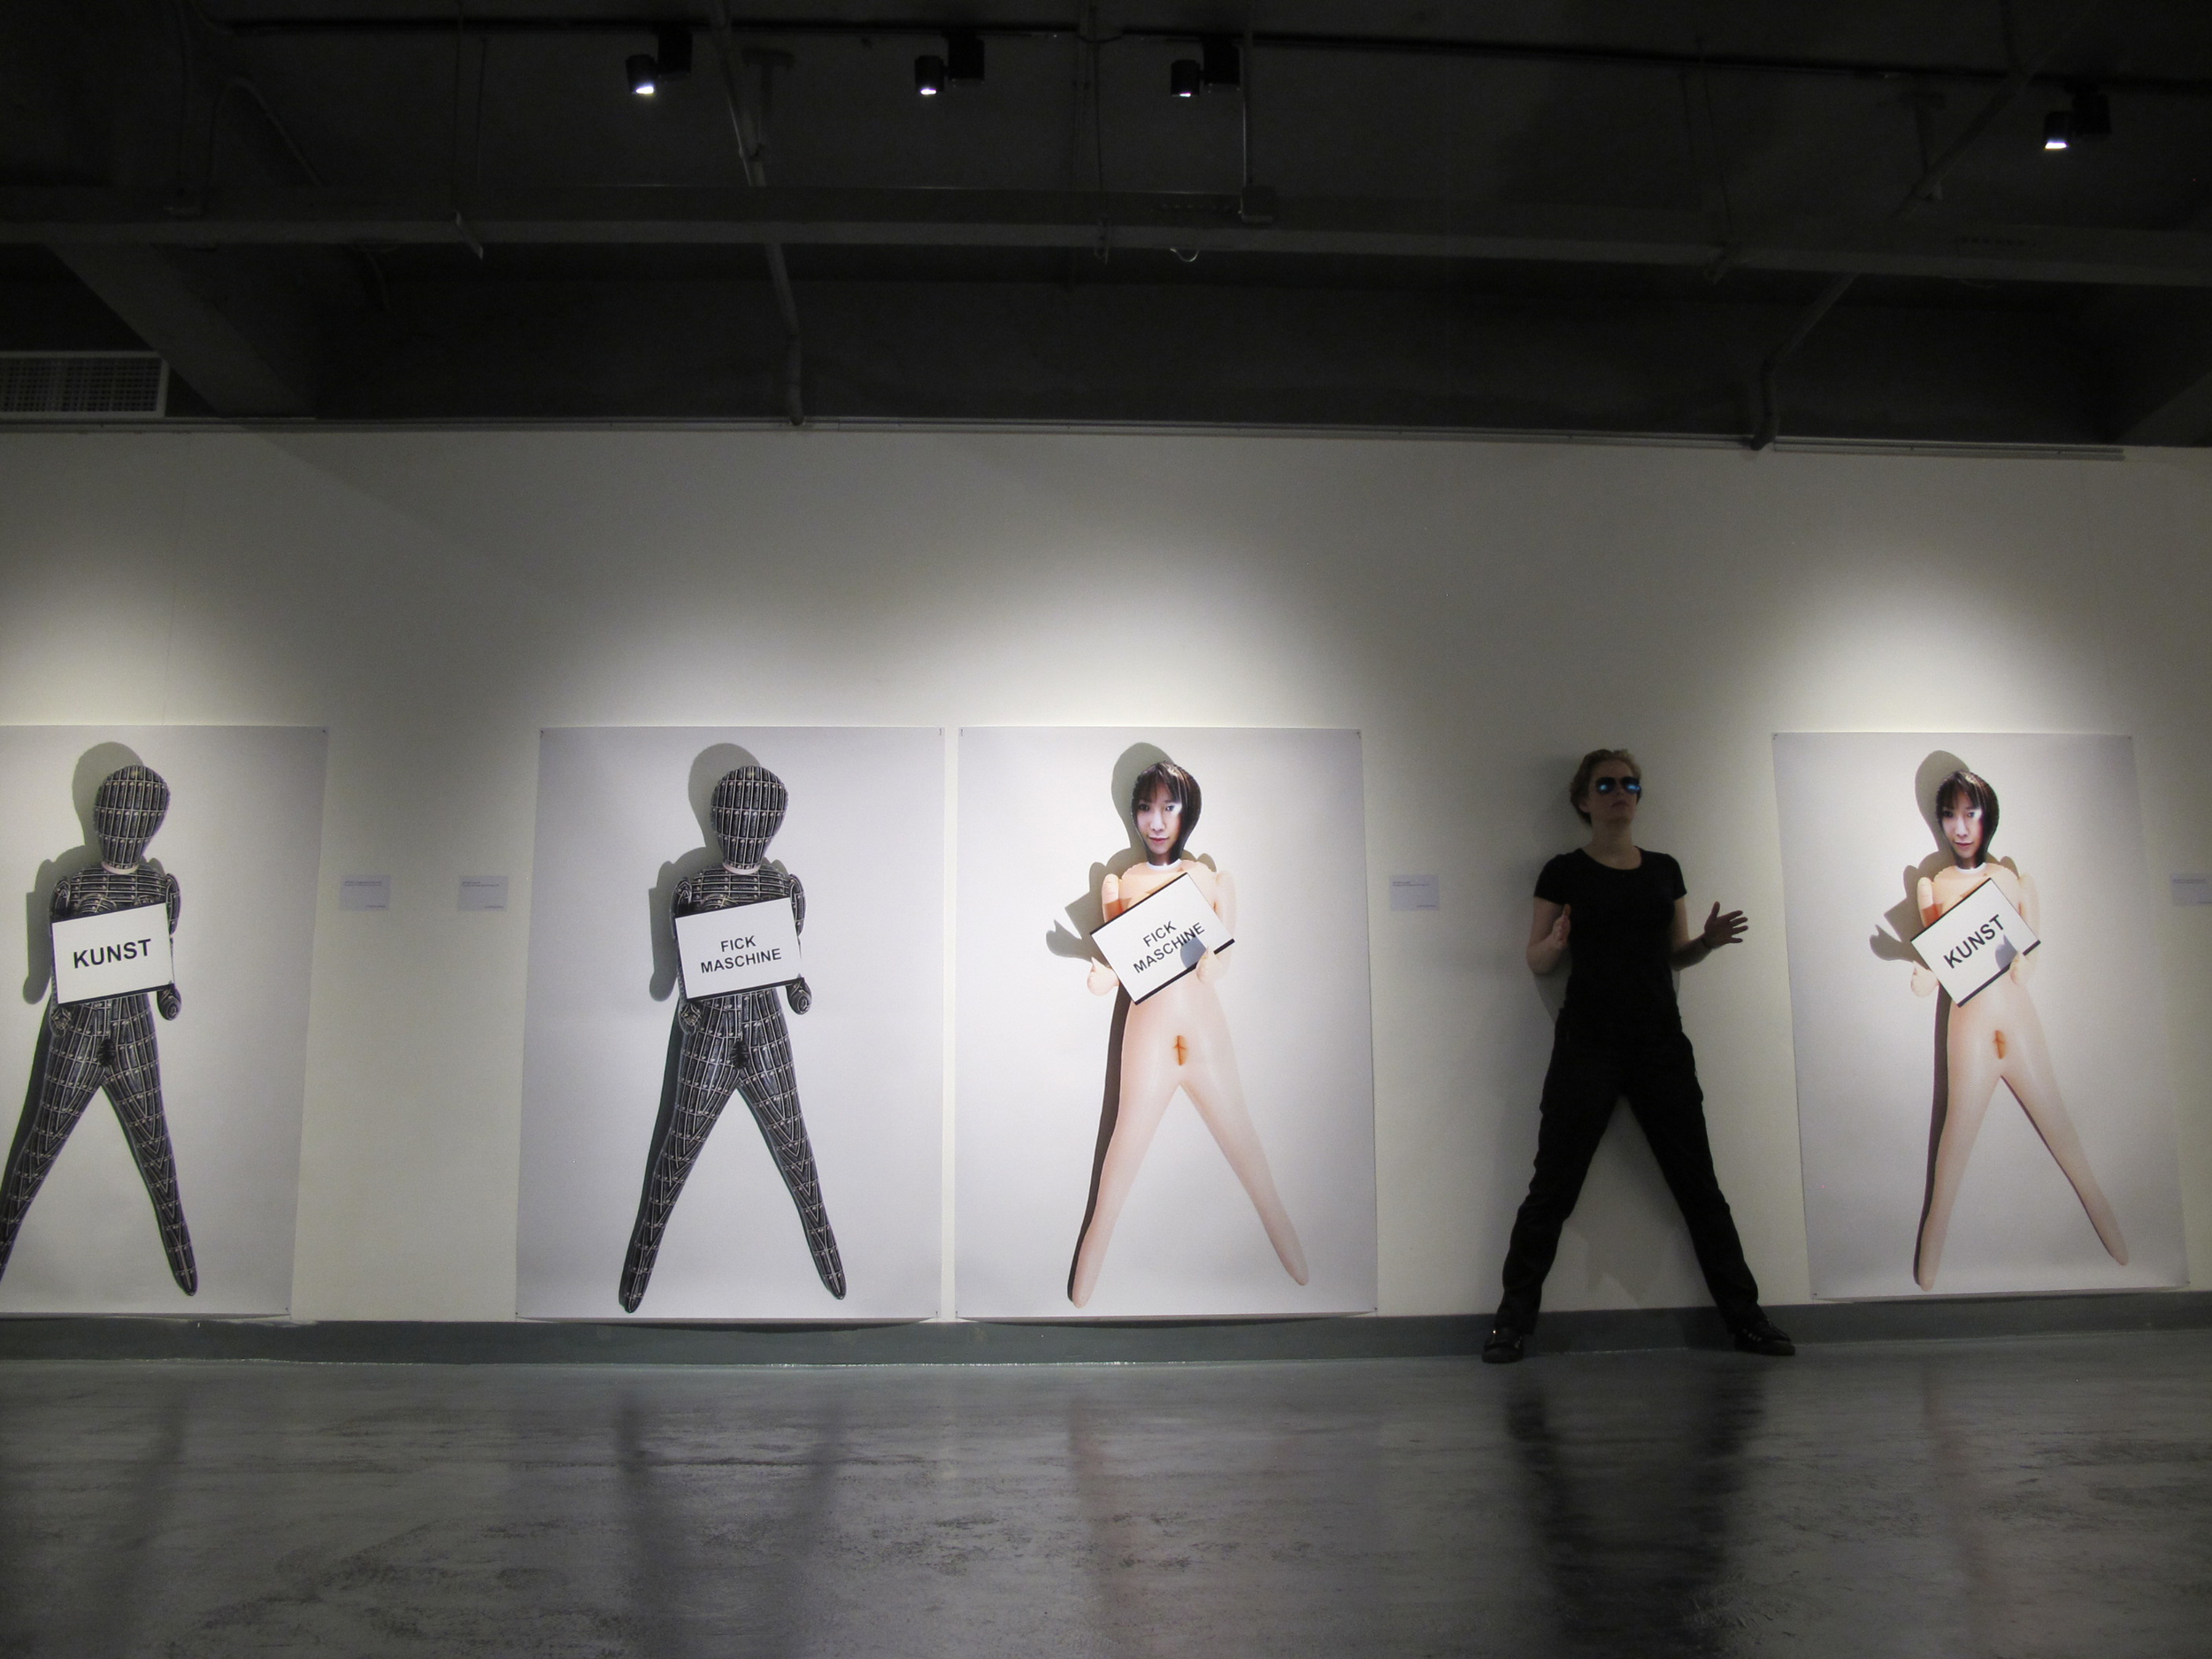 Installation view body noises, from the self-doll series, Tongqi art center Shanghai, China, 2012.